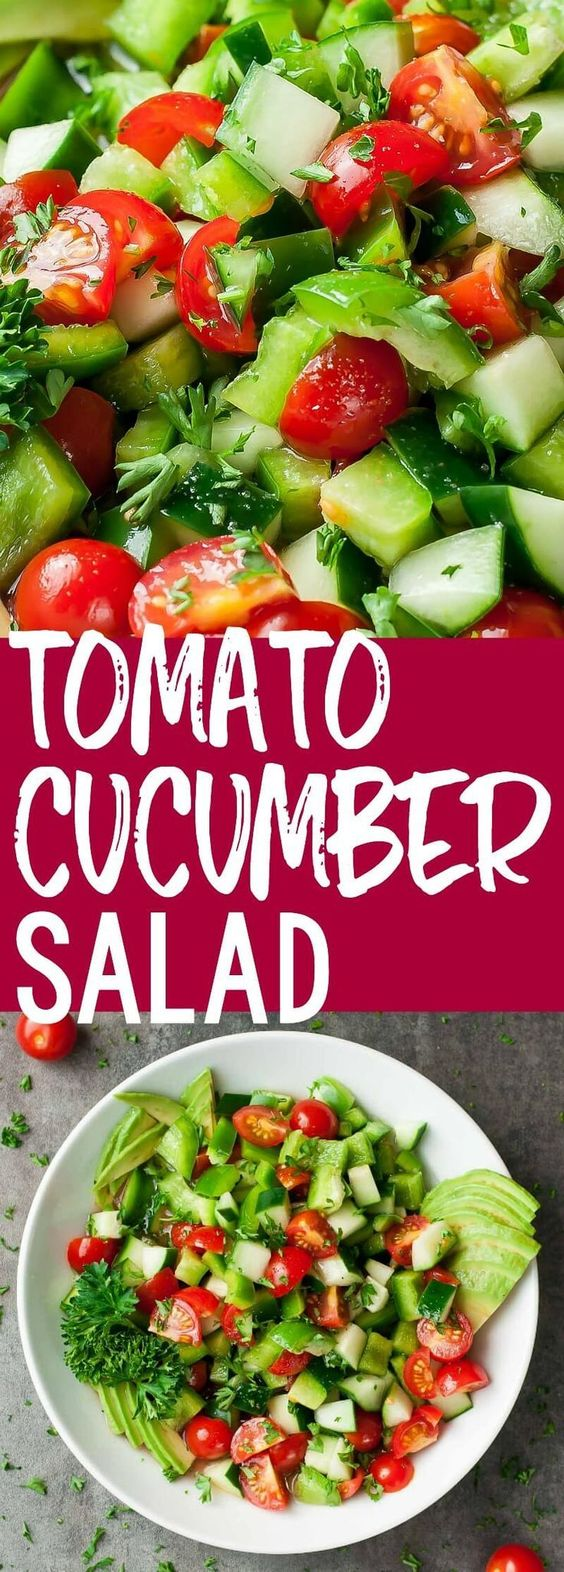 Healthy Tomato Cucumber Salad